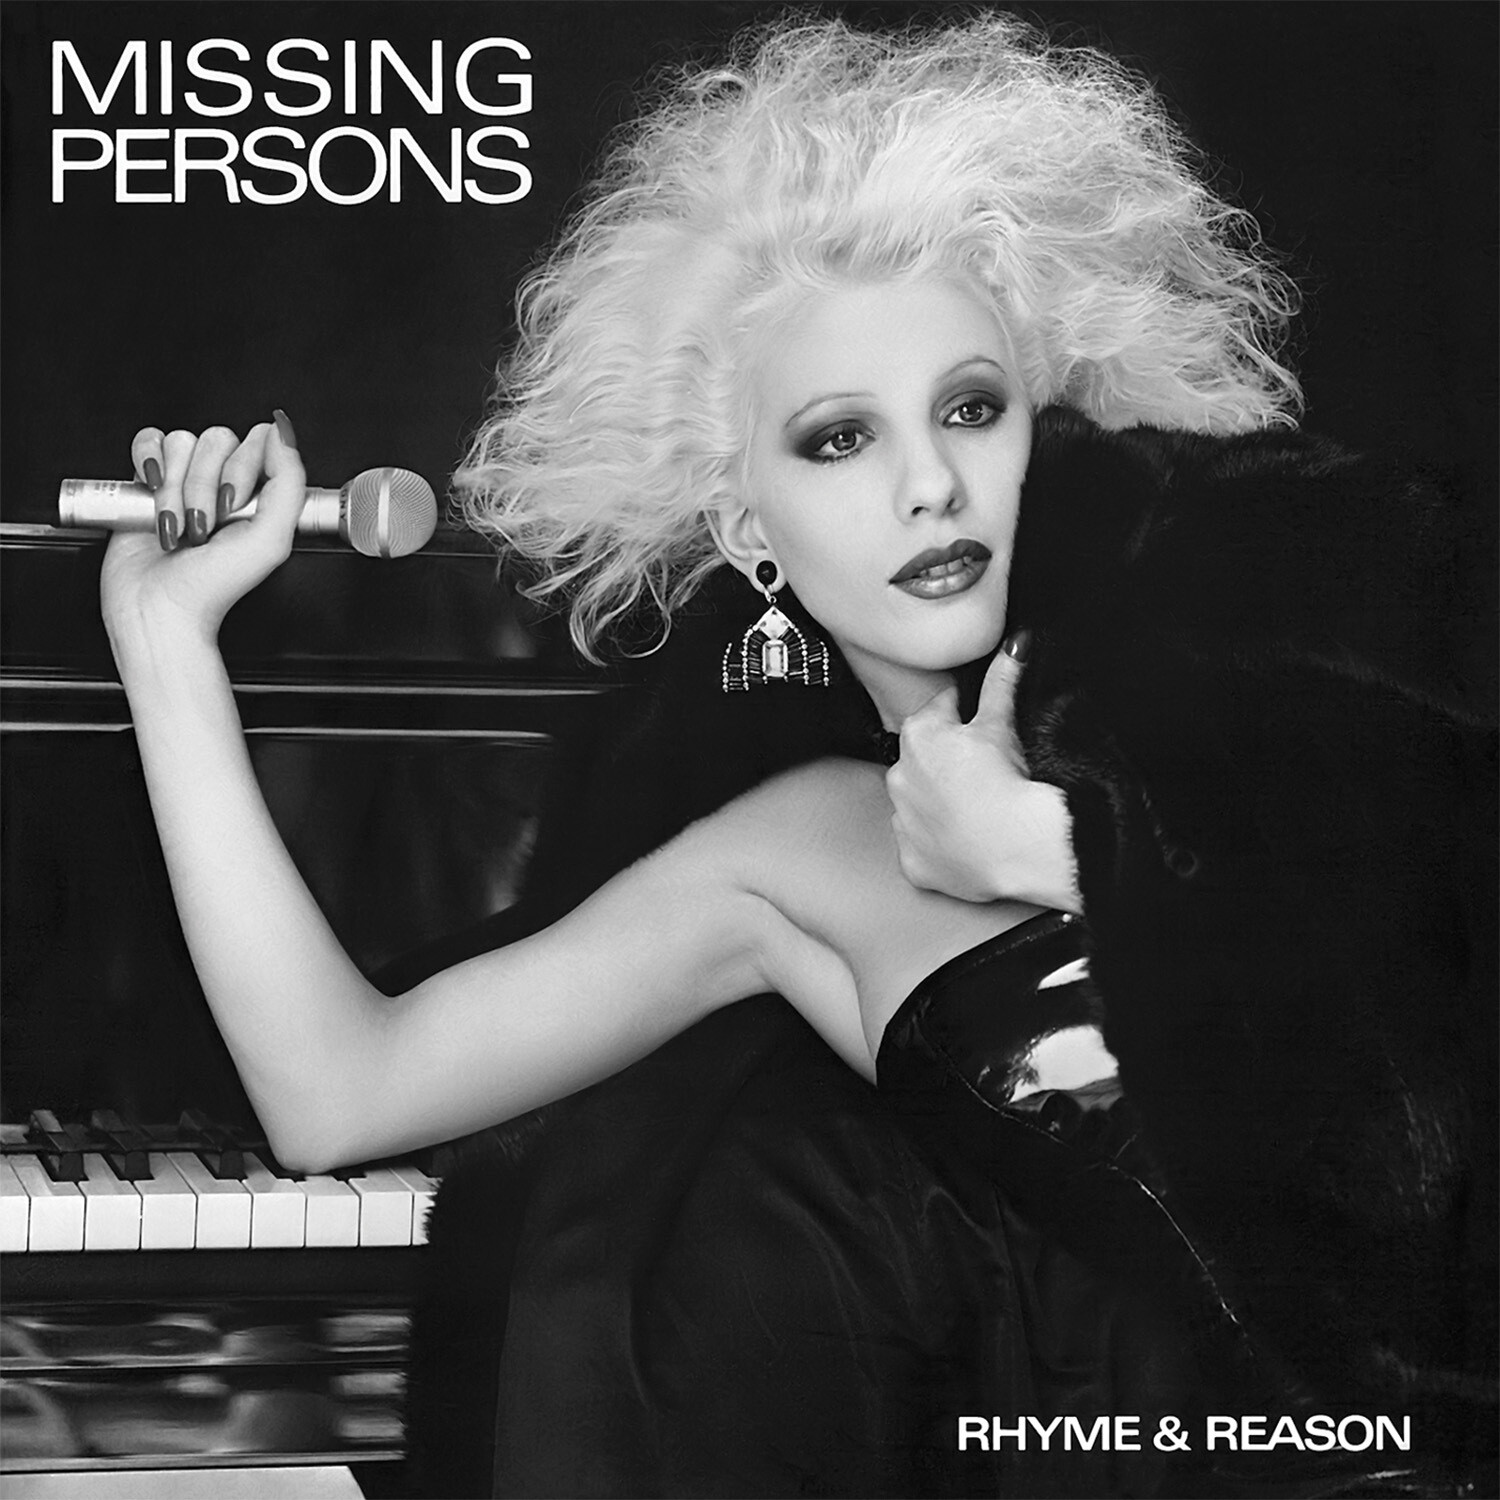 Missing Persons / Rhyme & Reason CD (2021 Remastered & Expanded Edition)